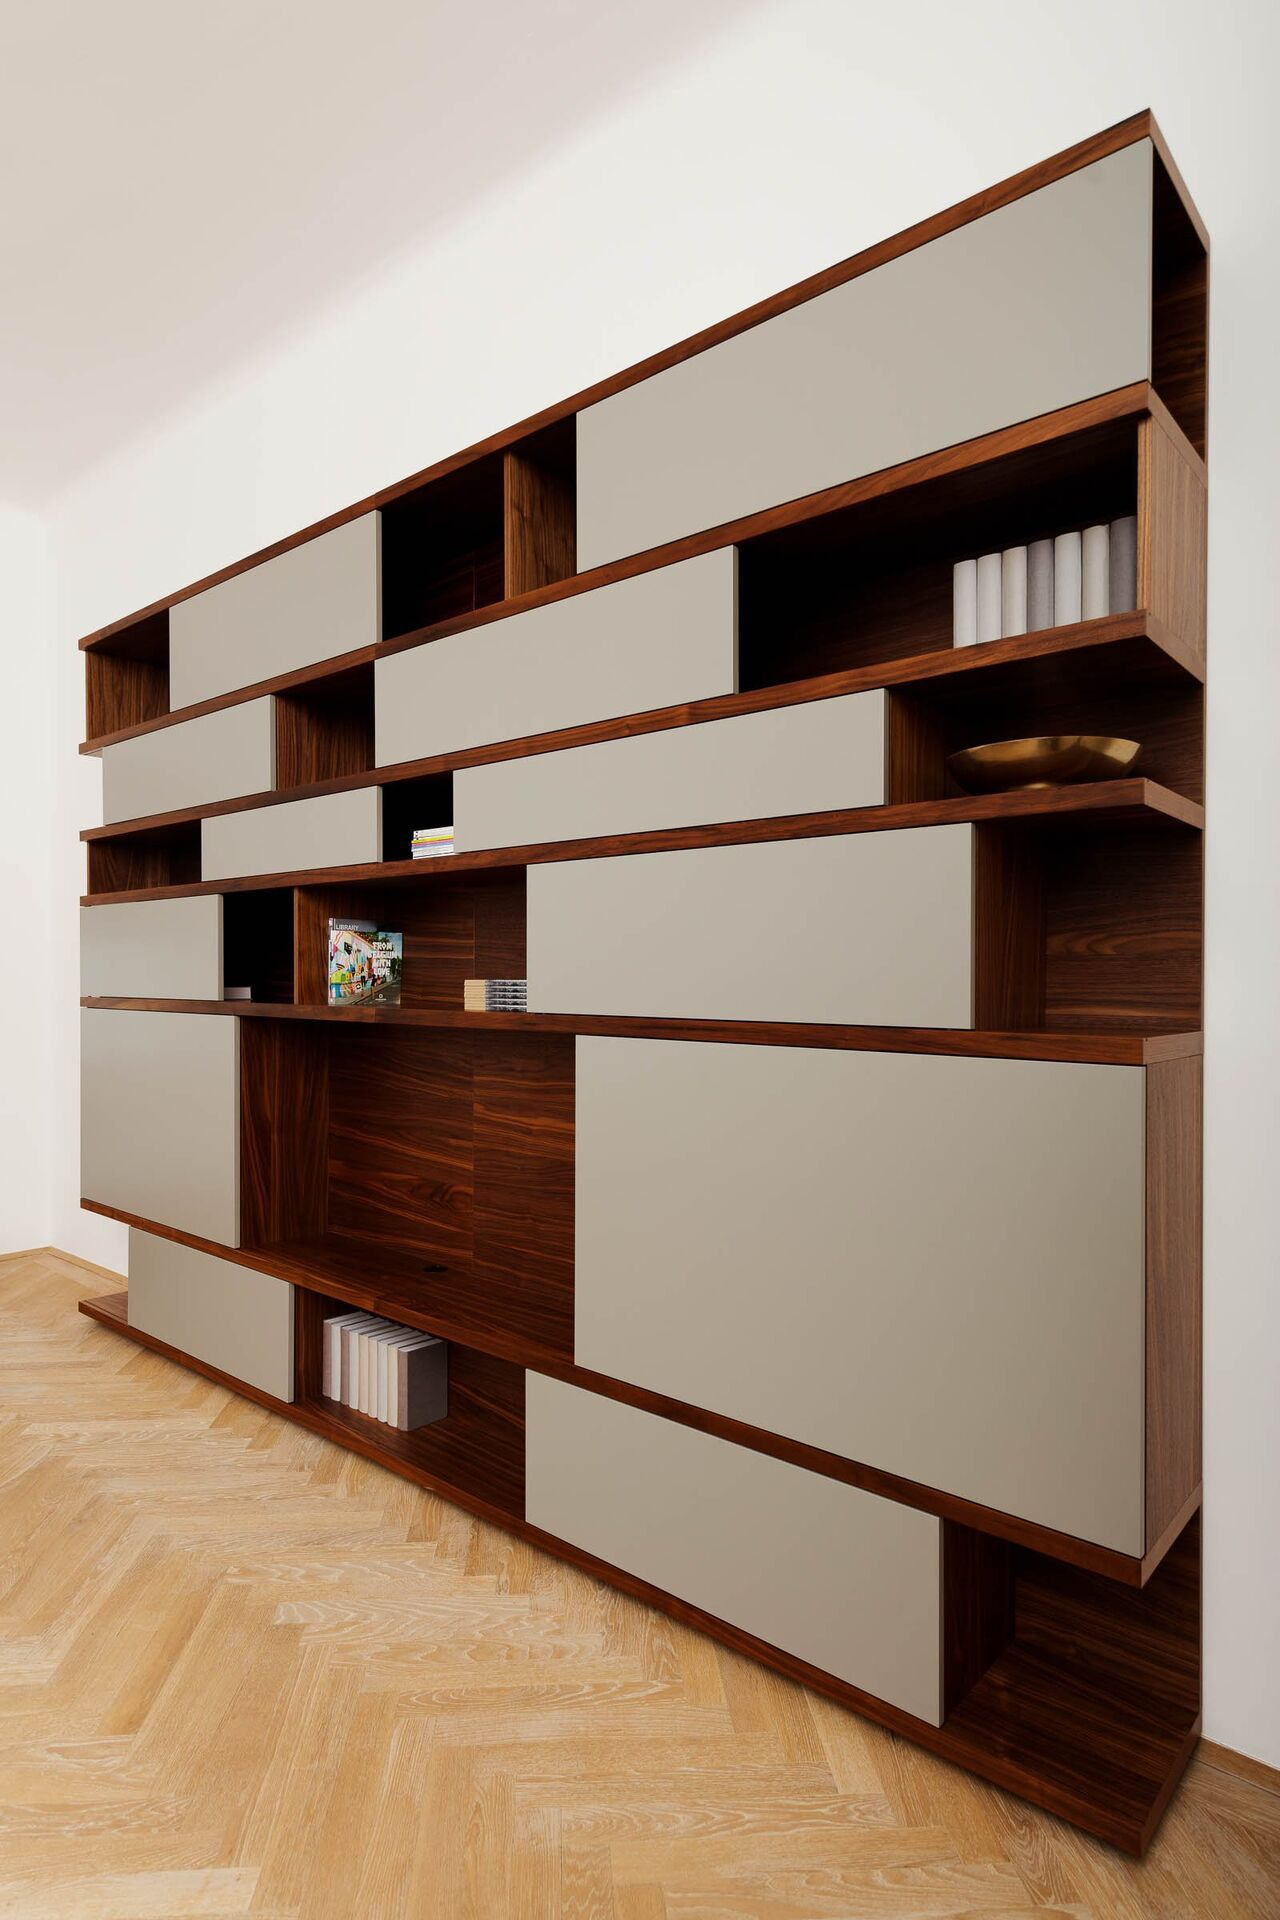 Regalböden Nach Maß Mobilamo Designregale Nach Mass Mobilamo Shelves In 2019 Regal